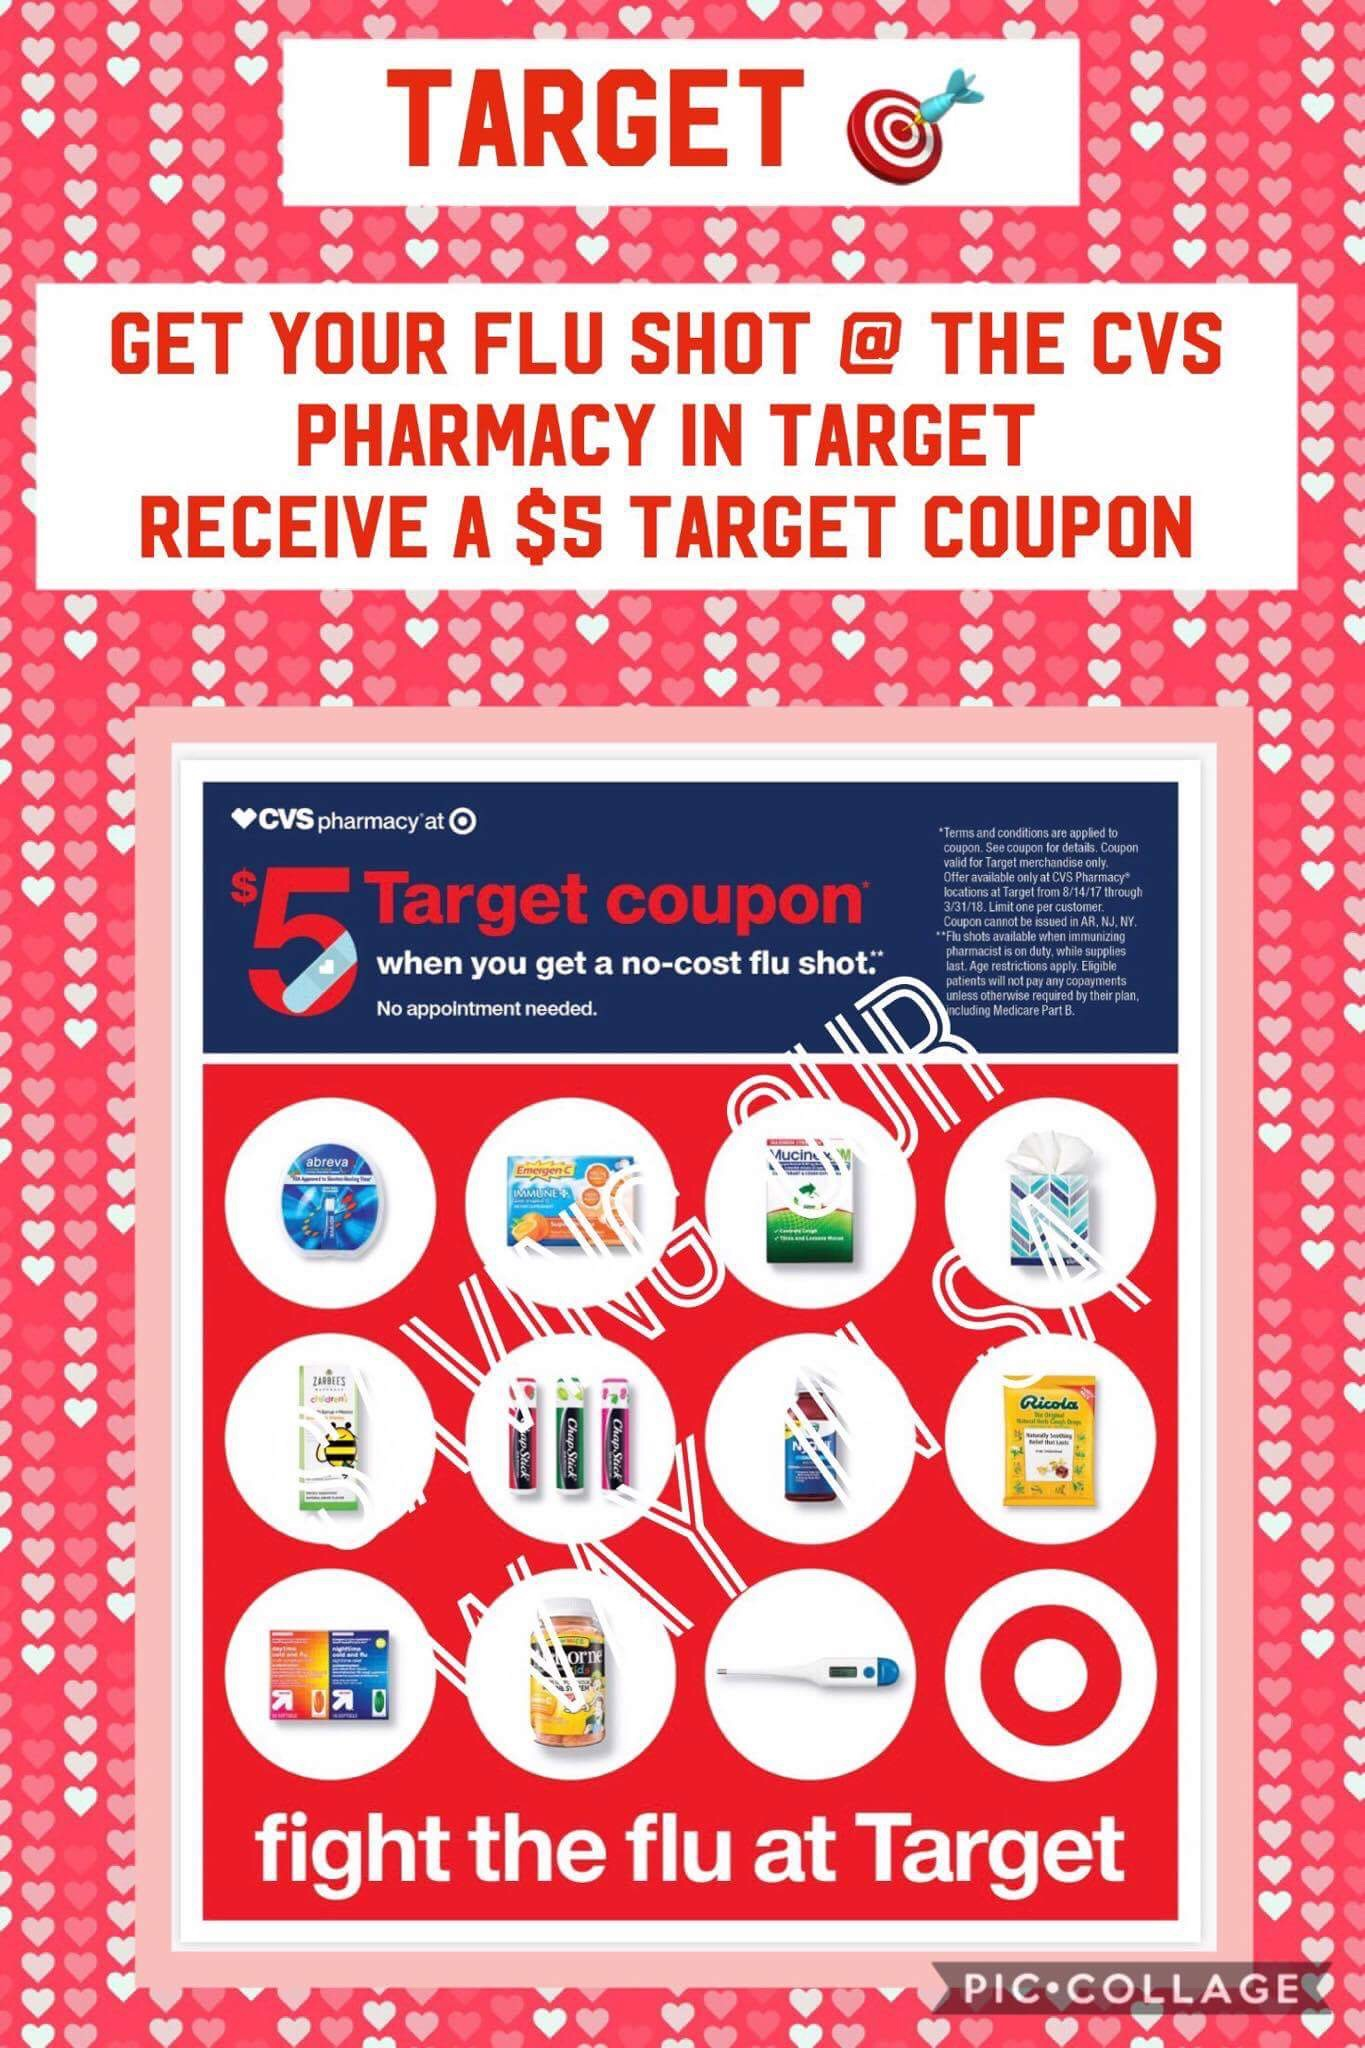 $5 Target Gift Card for getting your Flu shot @ CVS Pharmacy ...